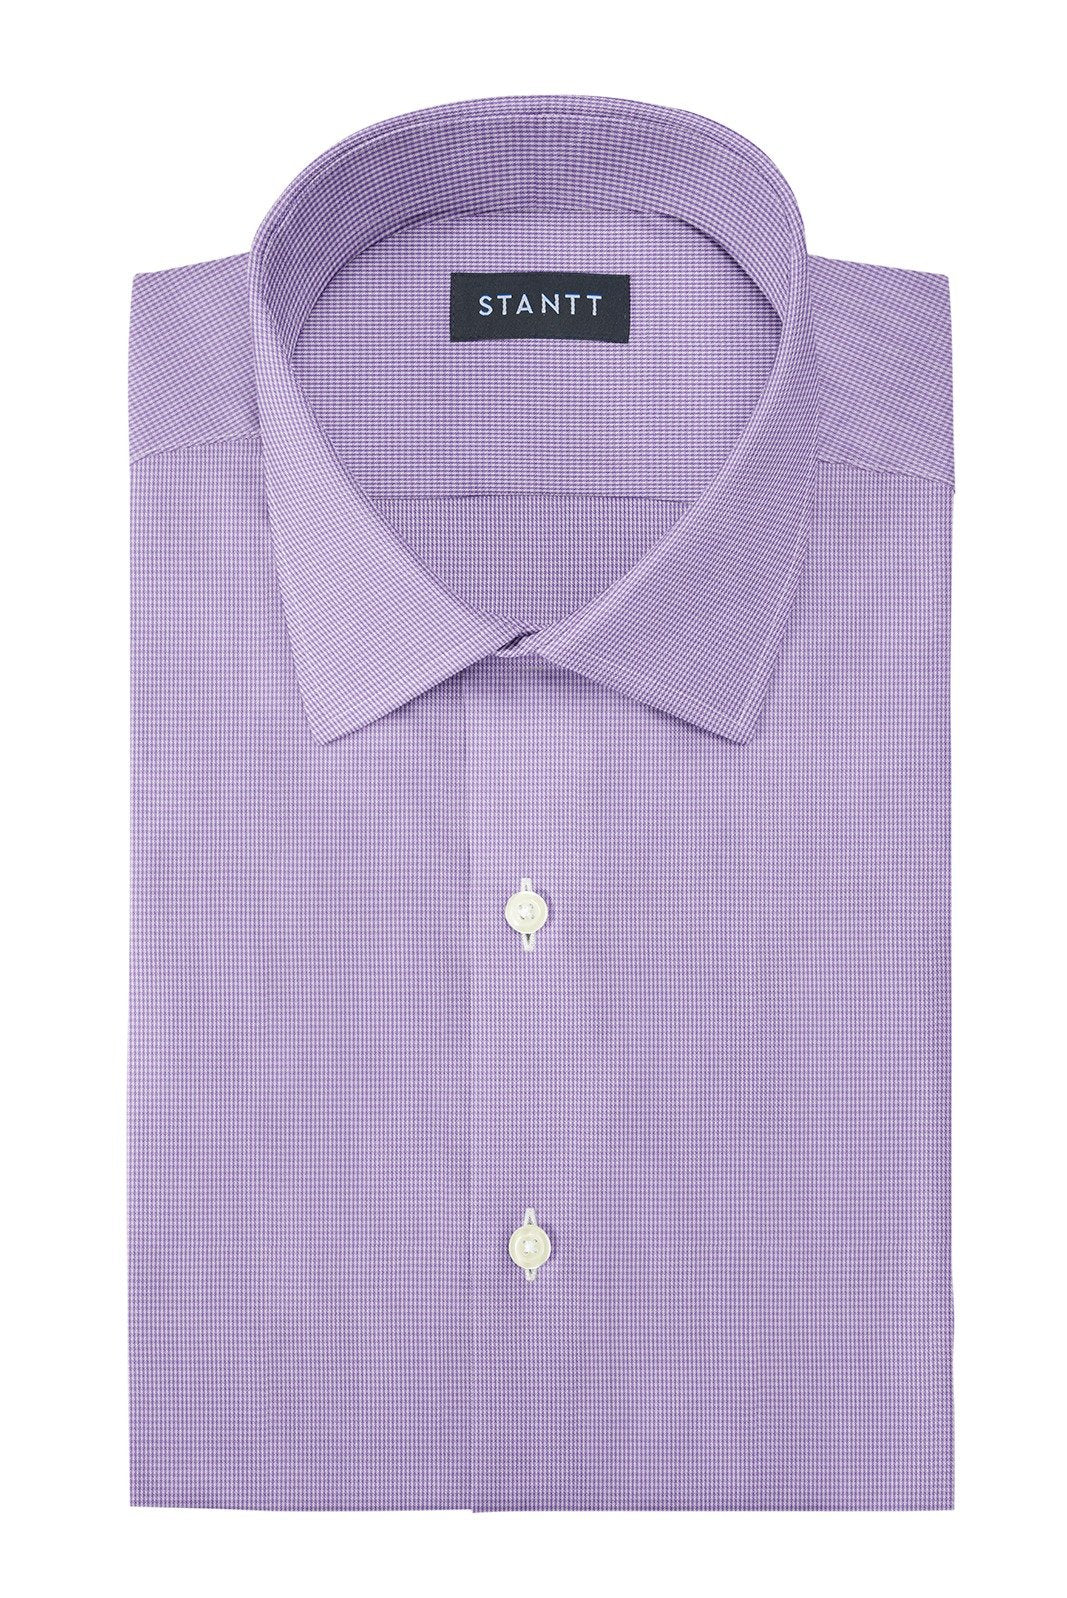 Wrinkle-Resistant Purple Micro Gingham: Modified-Spread Collar, Barrel Cuff